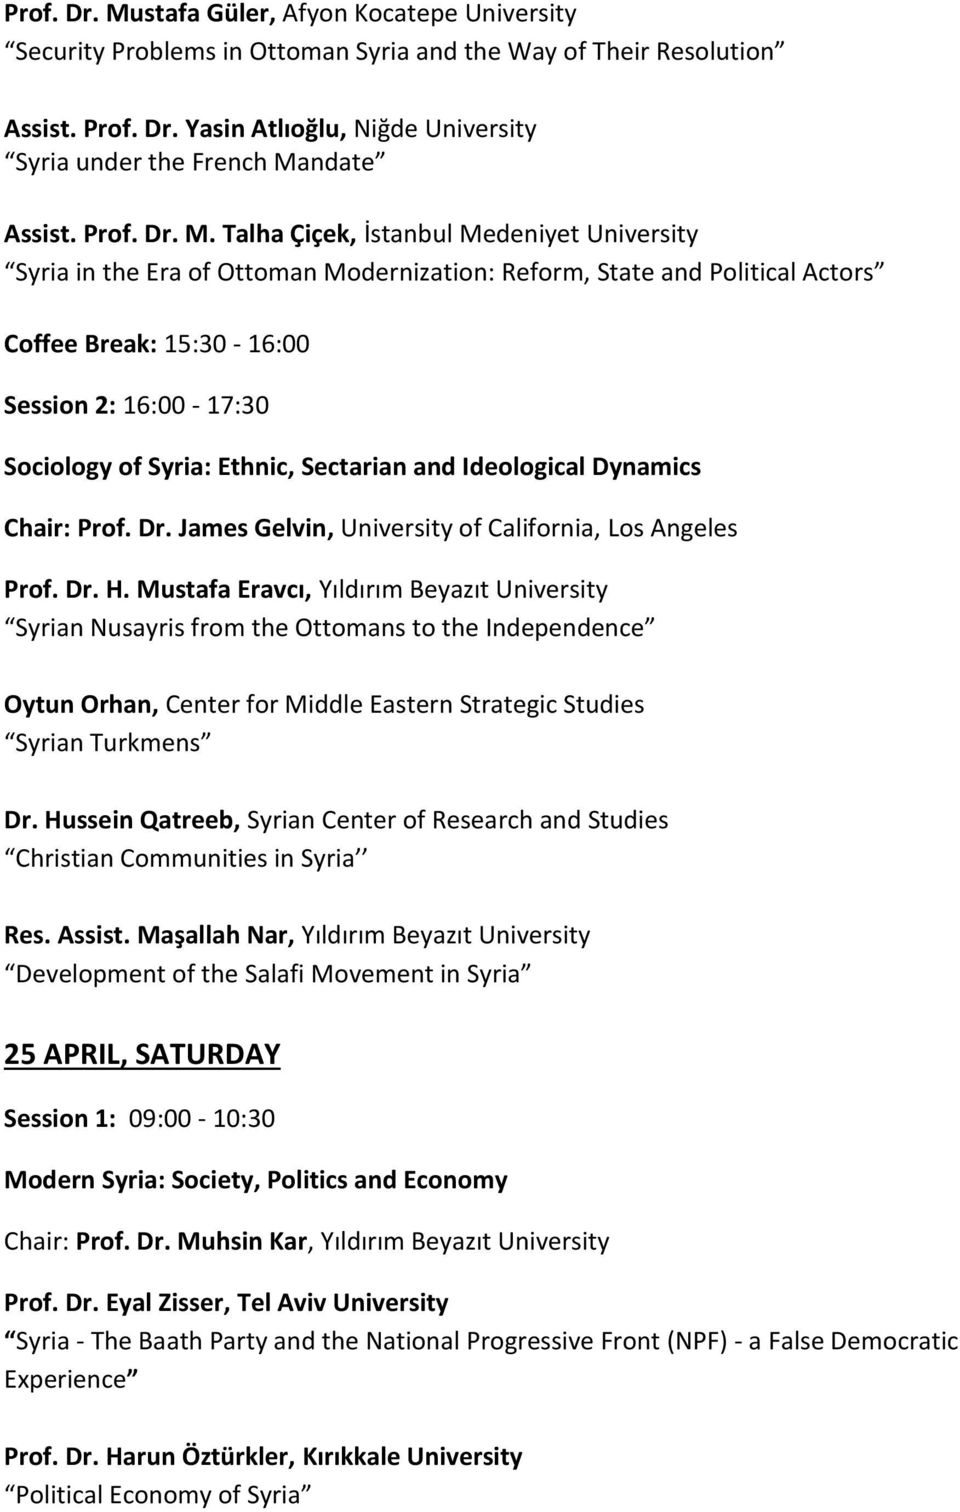 Talha Çiçek, İstanbul Medeniyet University Syria in the Era of Ottoman Modernization: Reform, State and Political Actors Coffee Break: 15:30-16:00 Session 2: 16:00-17:30 Sociology of Syria: Ethnic,